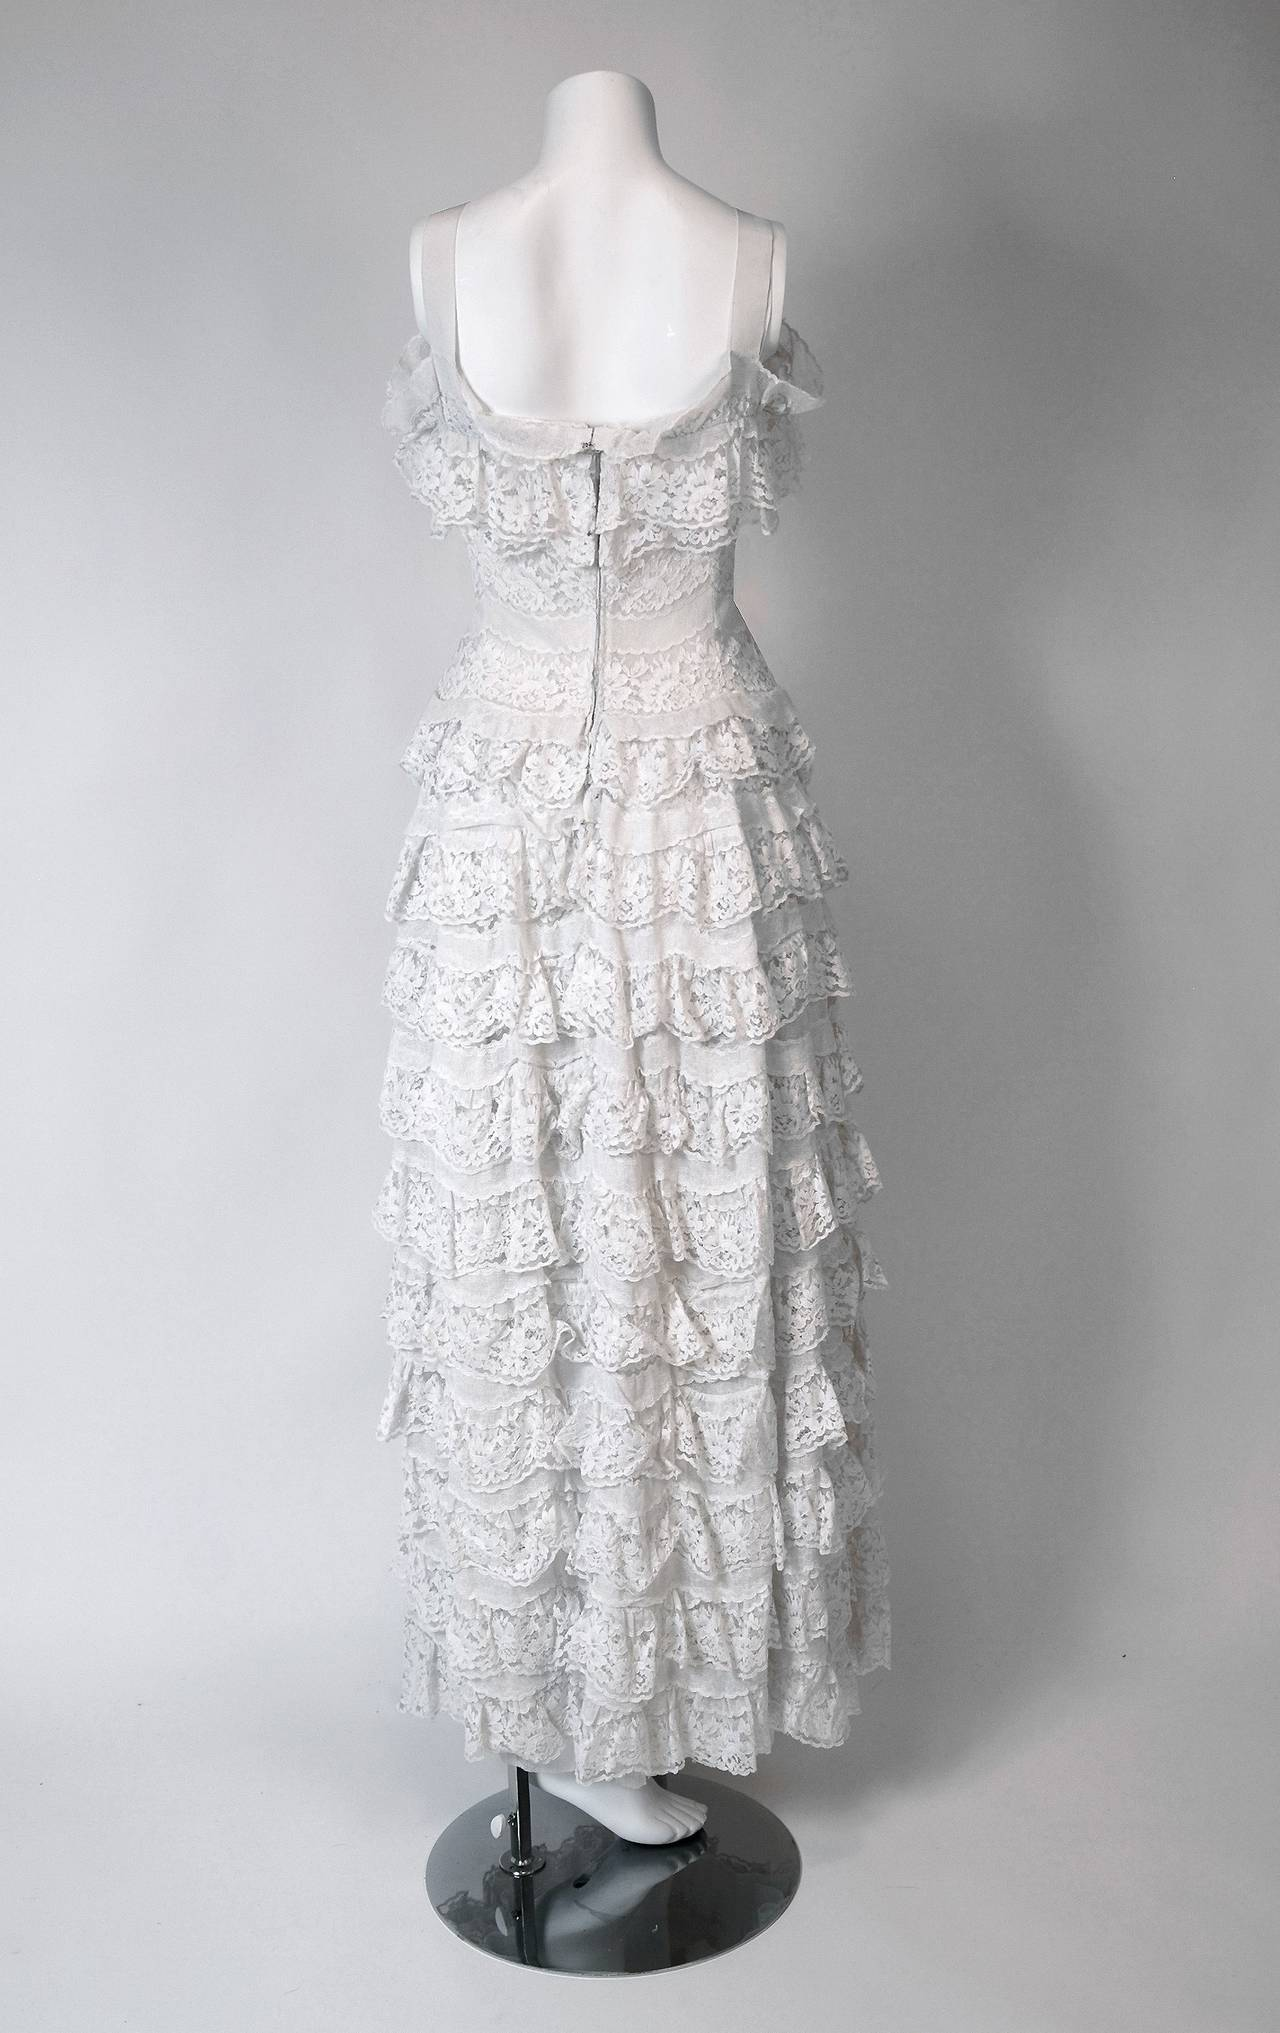 1962 Christian Dior Paris Demi-Couture White Tiered Ruffle Lace Formal Gown For Sale 1